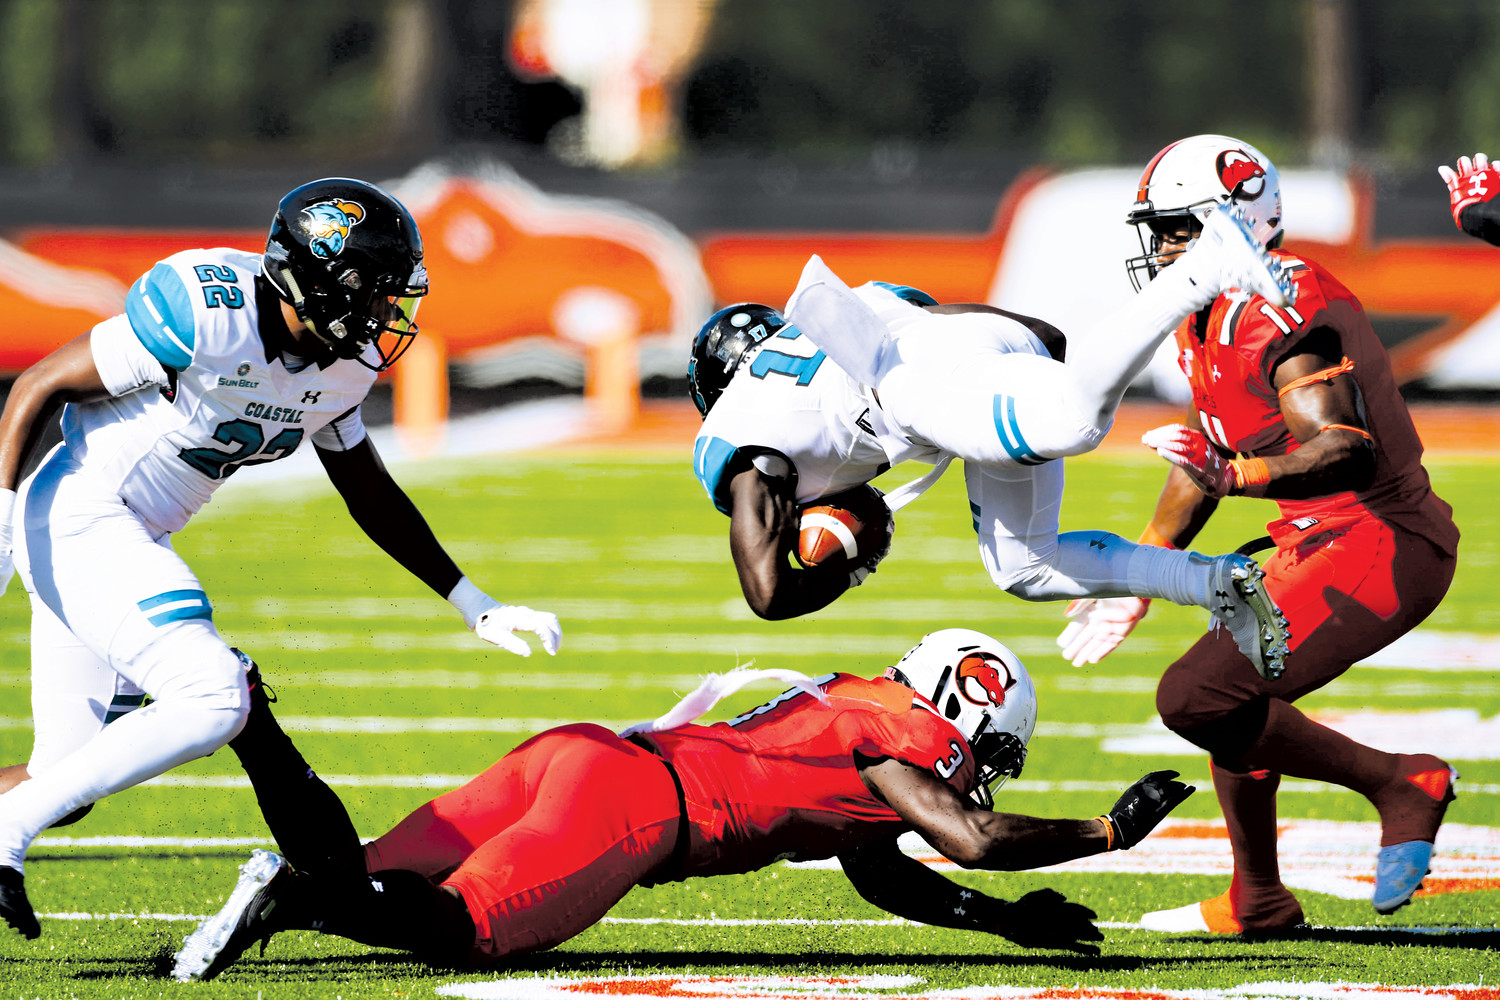 The Campbell Camels hosted FBS opponent Coastal Carolina Wednesday afternoon at Barker-Lane Stadium. Coastal defeated the Camels 58-21.